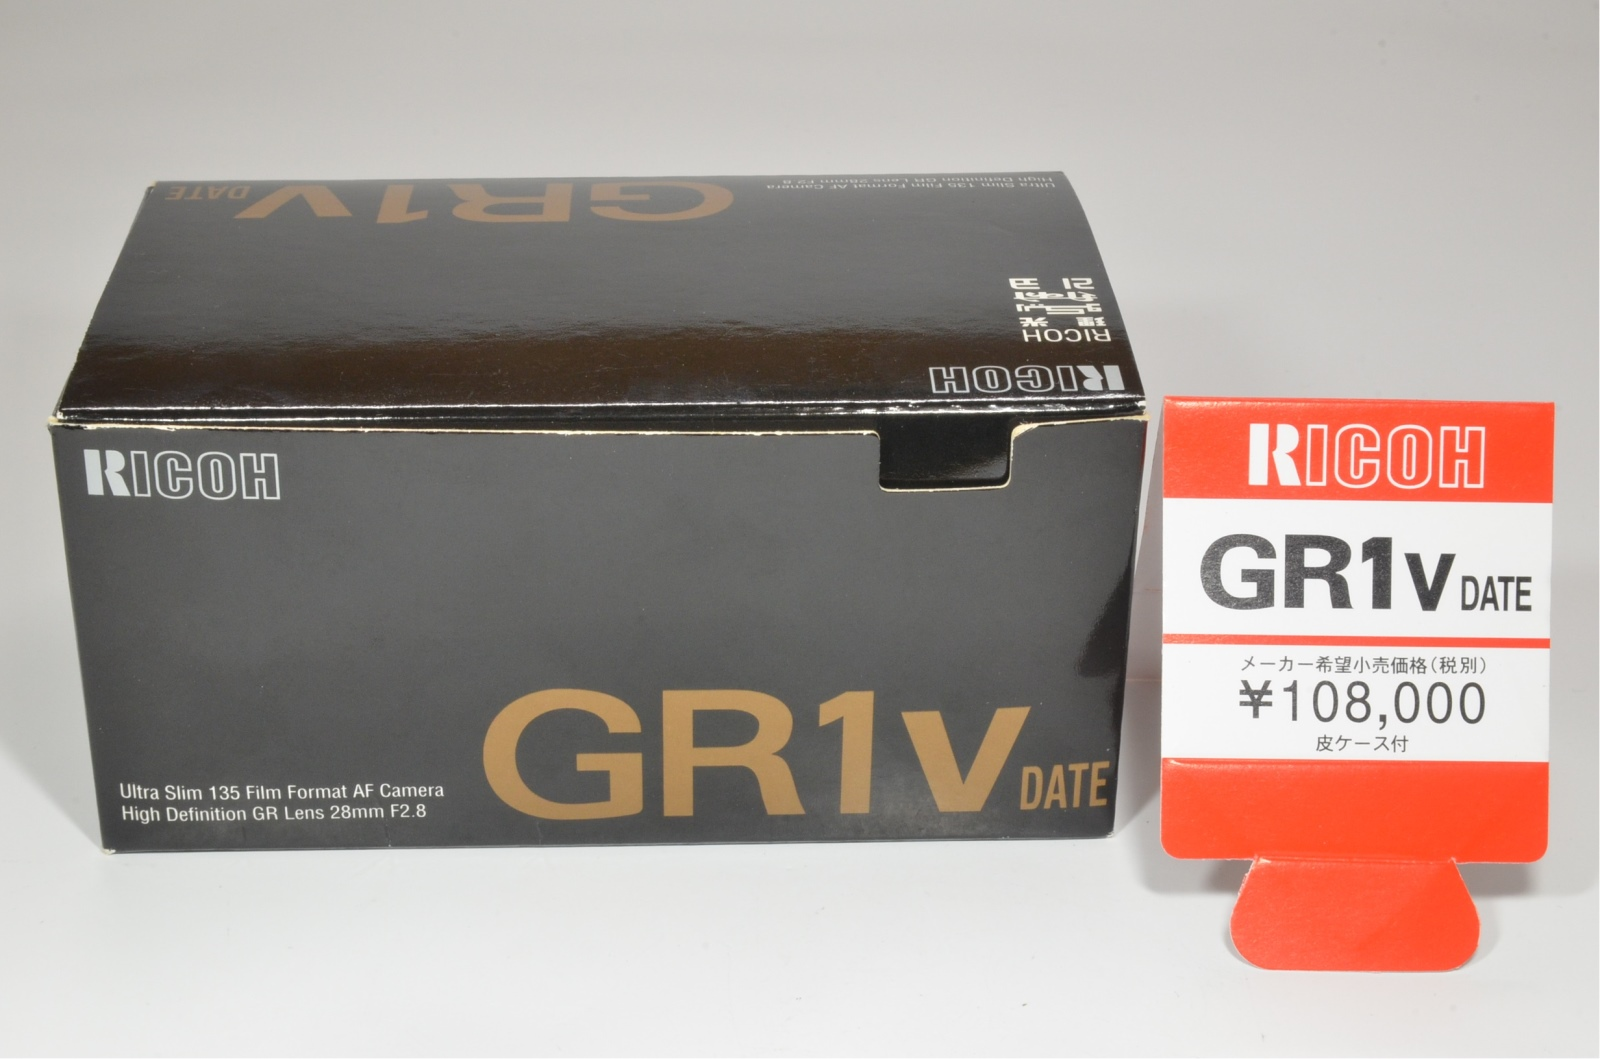 ricoh gr1v date p&s 35mm film camera 28mm f2.8 never used